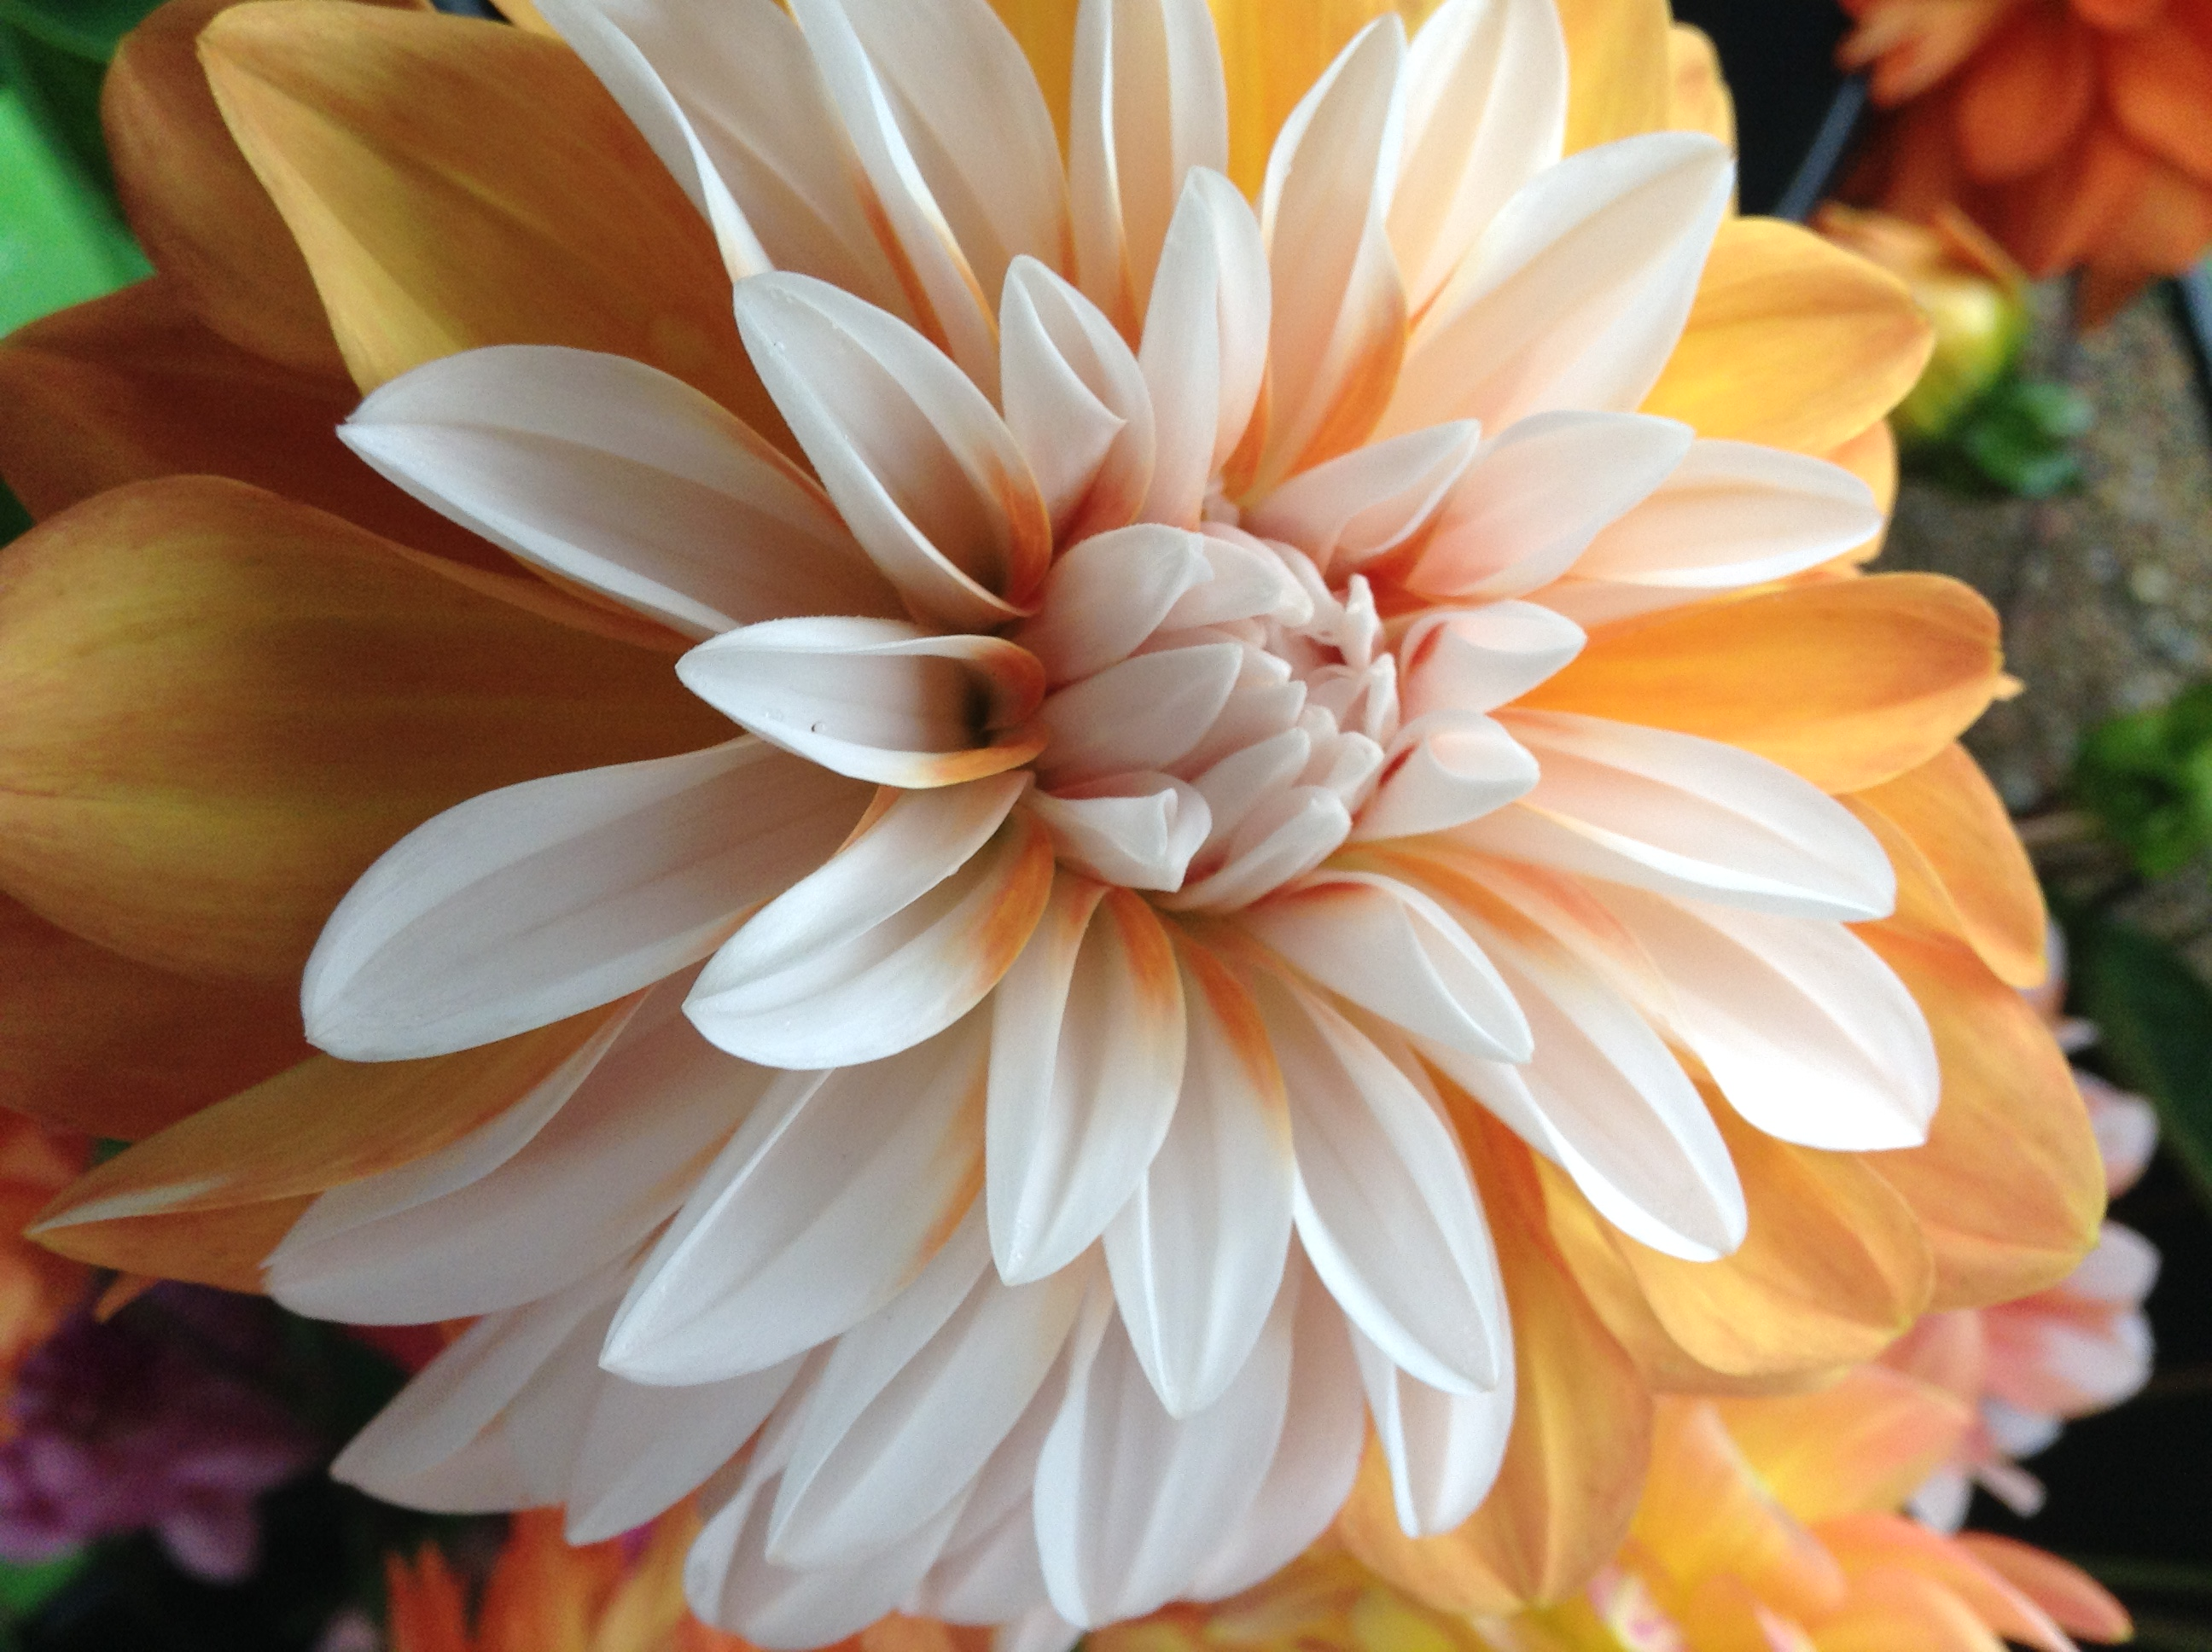 About us warwick dahlias we open the garden once a year to the public on labor day weekend this year that is sept 1st and 2nd 2018 all other times the farm is open by izmirmasajfo Gallery